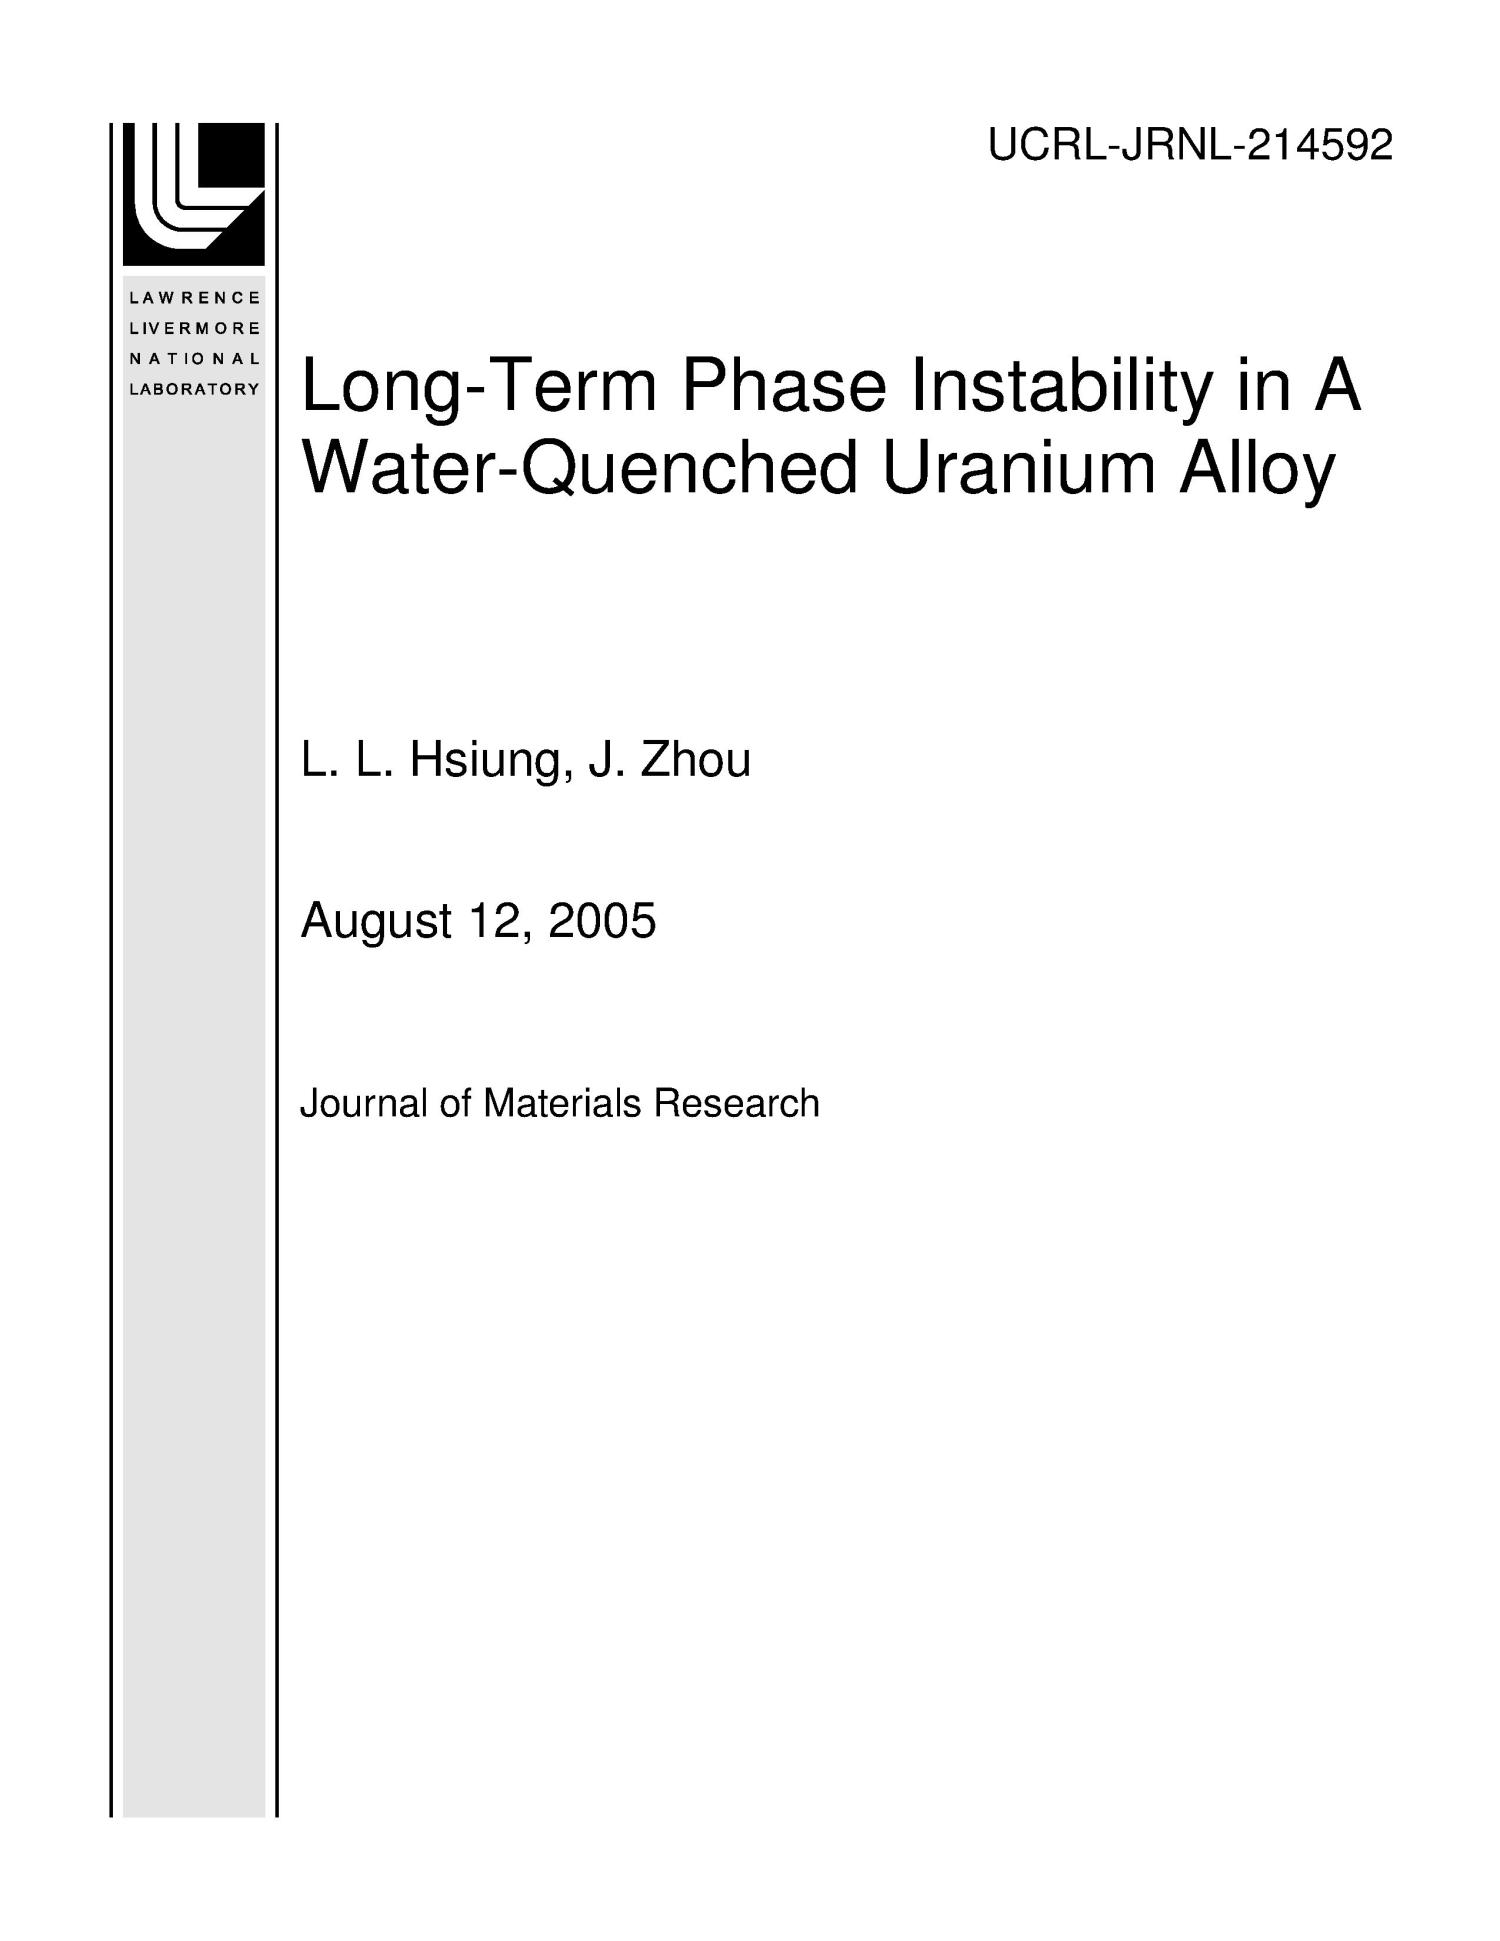 Long-Term Phase Instability in A Water-Quenched Uranium Alloy                                                                                                      [Sequence #]: 1 of 16